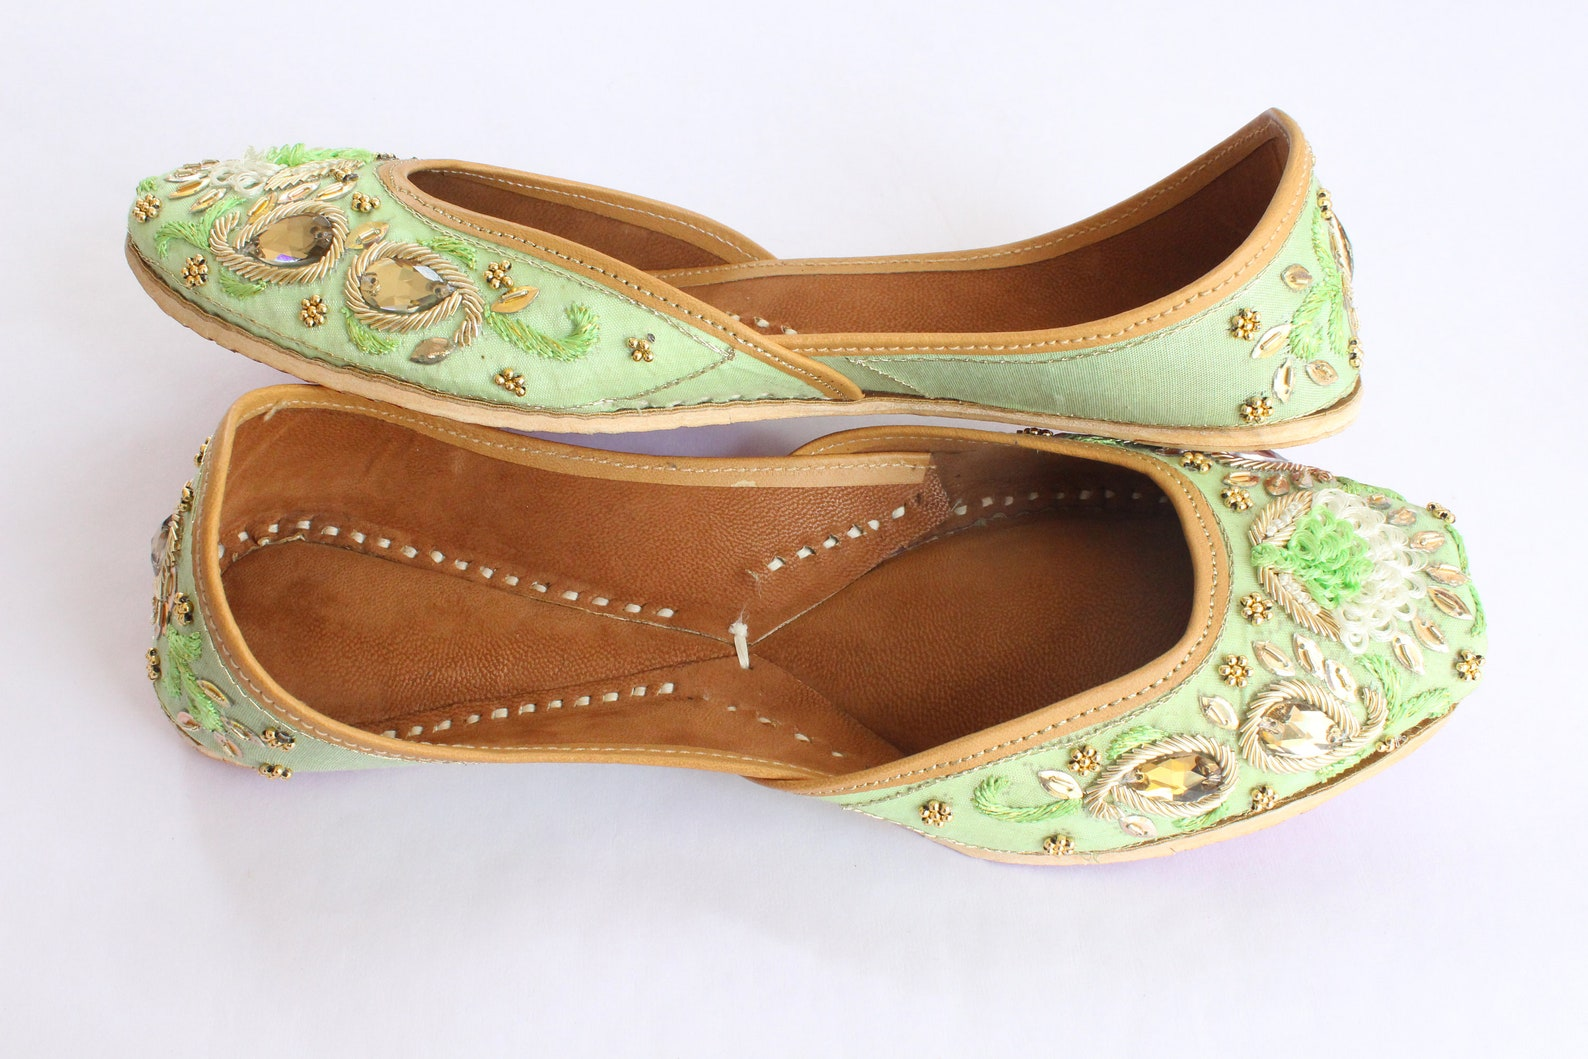 indian bridal wedding shoes/women green lehnga gold jutti shoes/wedding flats/ballet flats/jasmine shoes/khussa shoes/punjabi sh